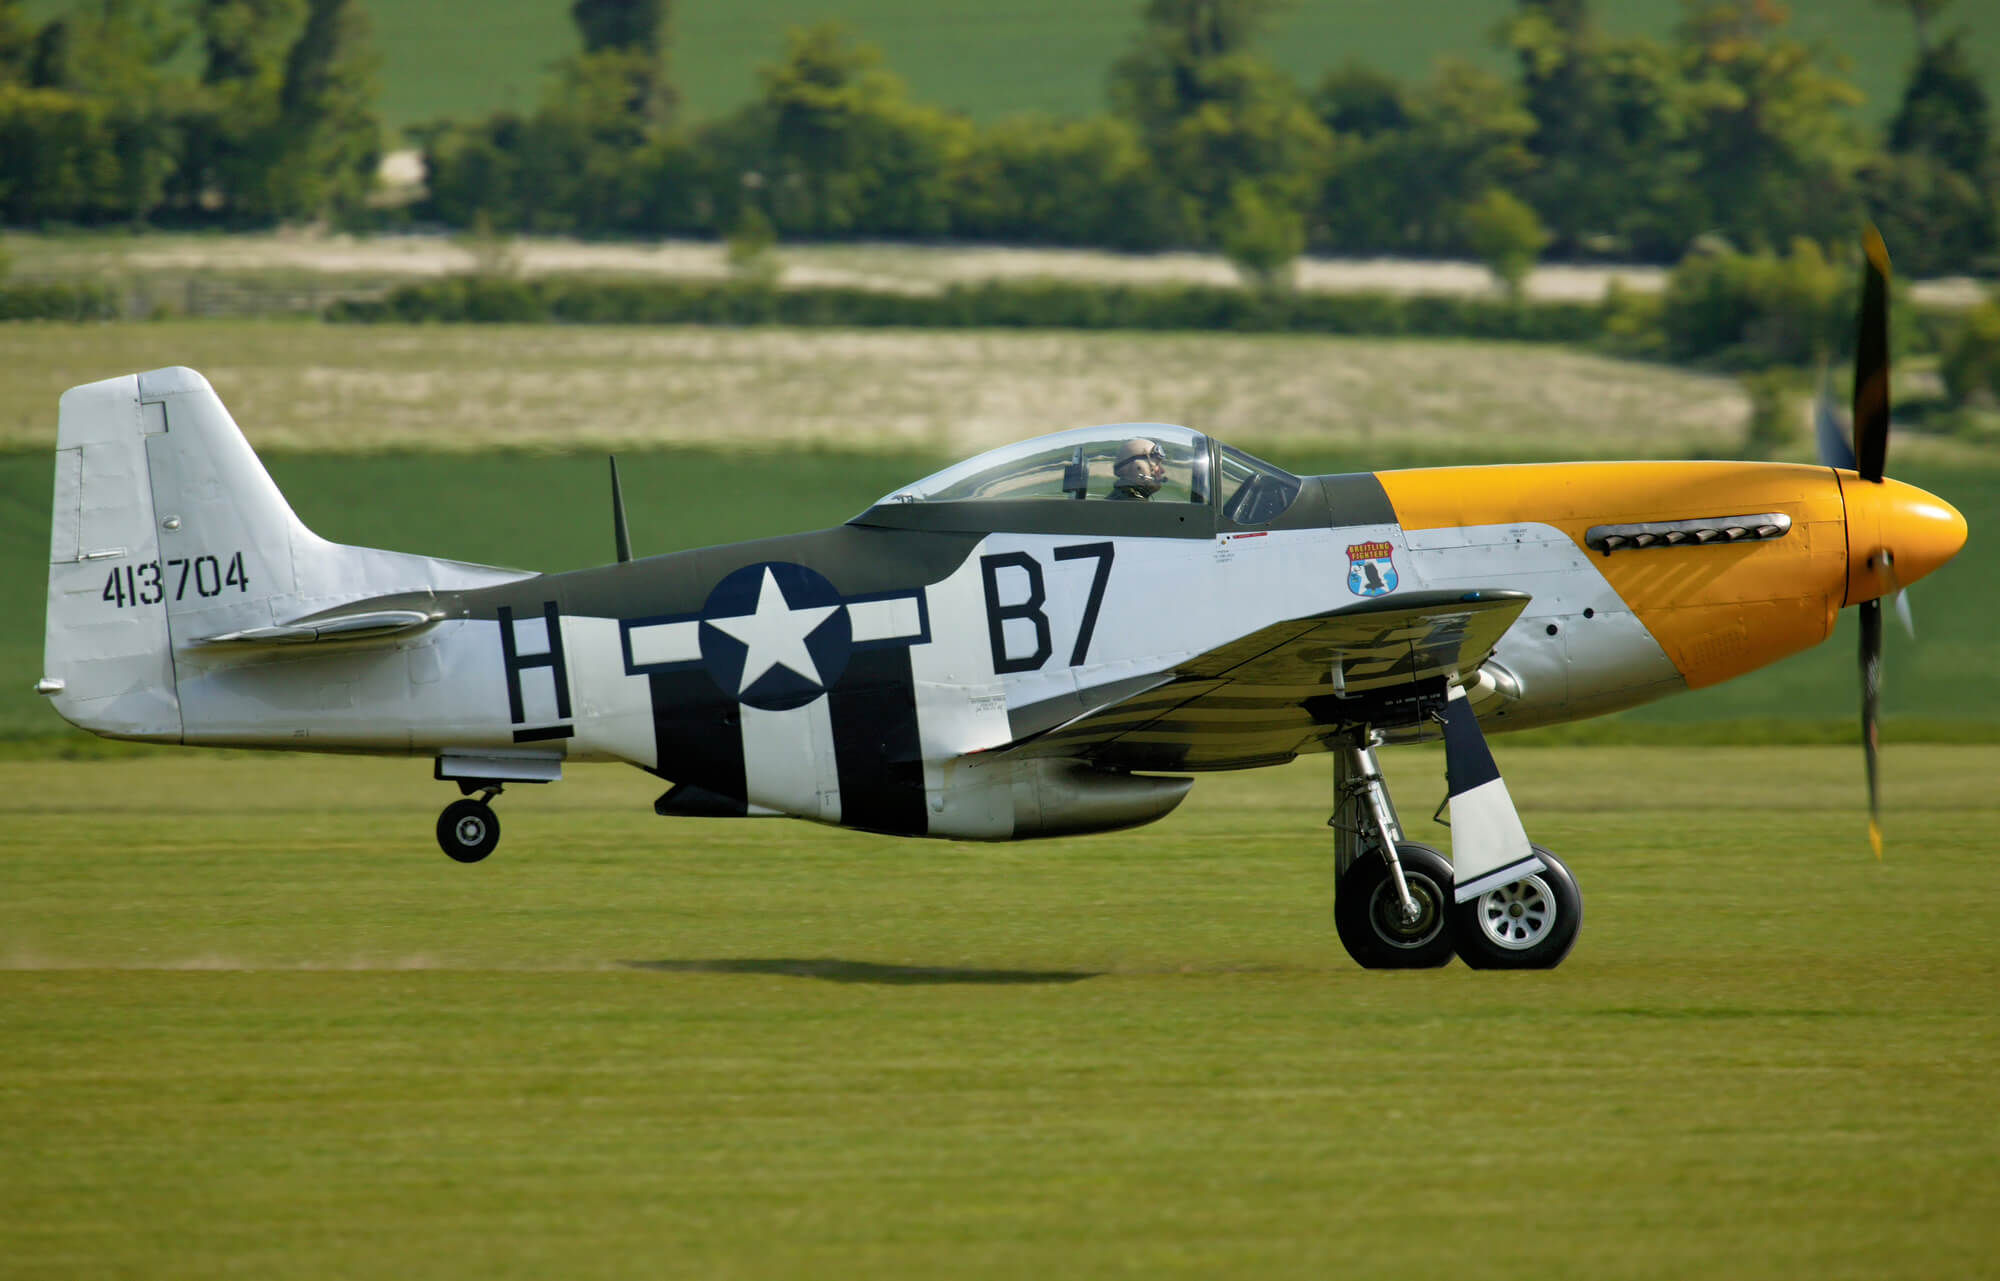 p51 mustang ready for action wall mural & p51 mustang ready for